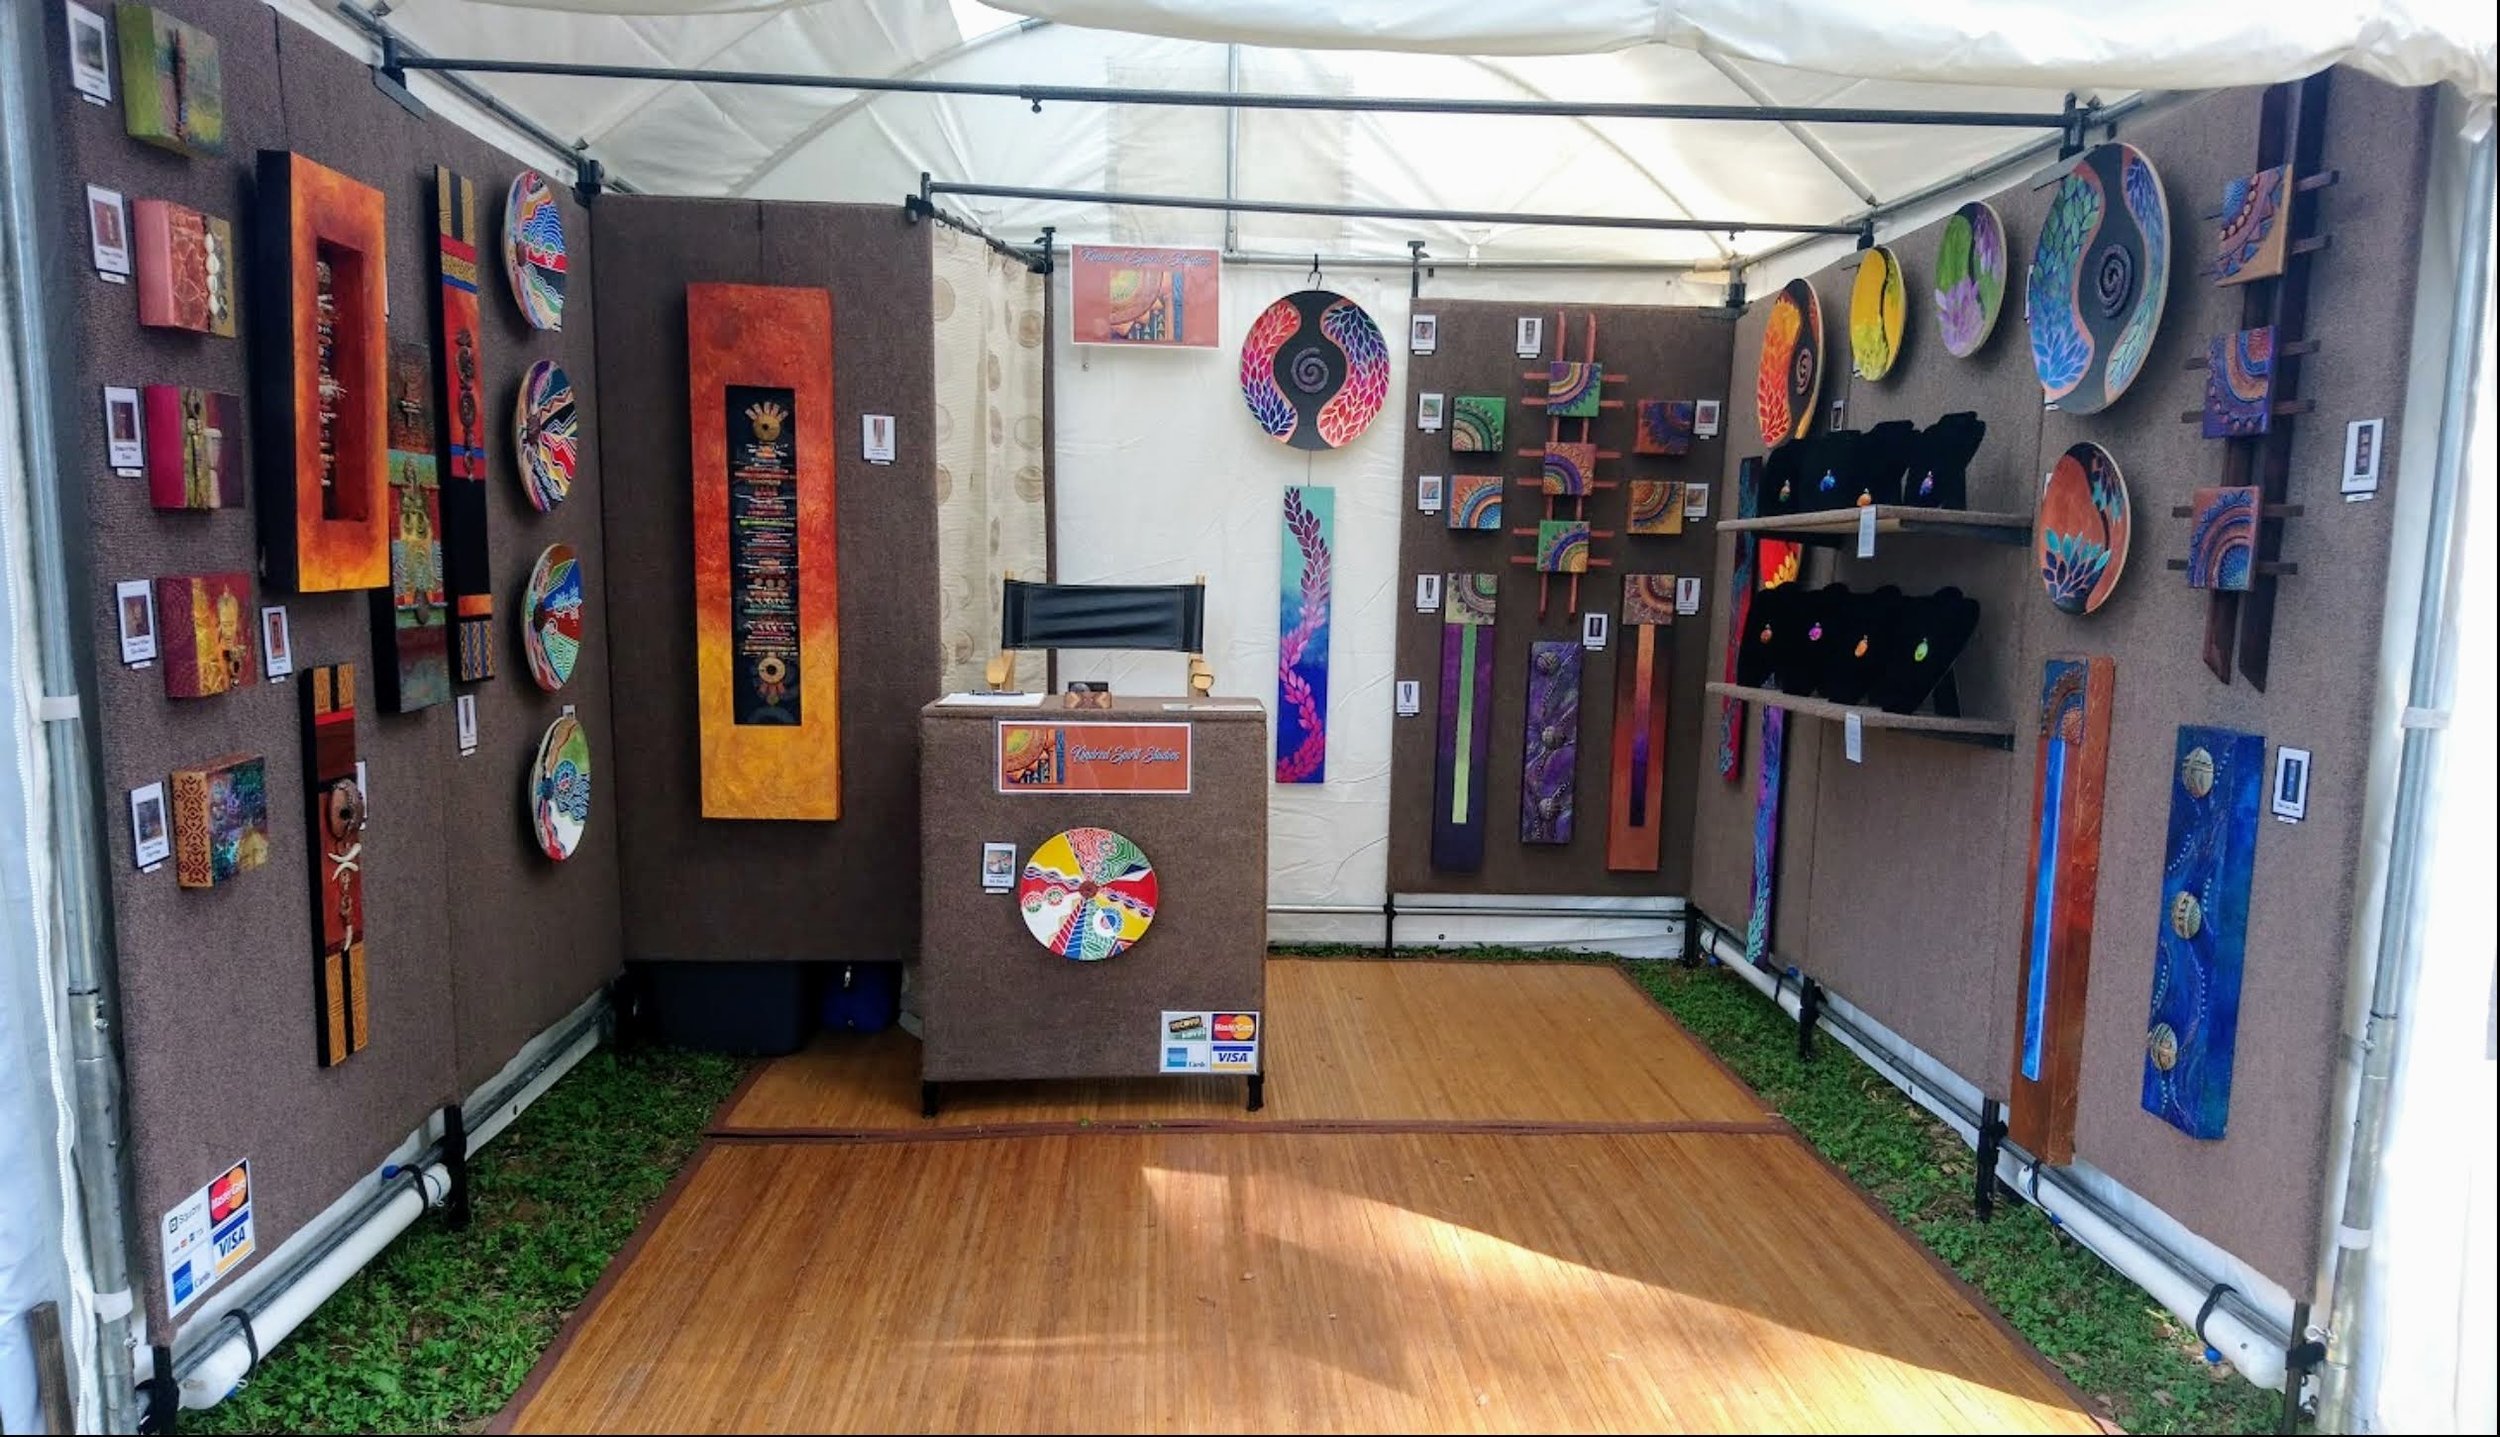 mixed media artist Michelle Davis Petelinz's booth, showing her wall art